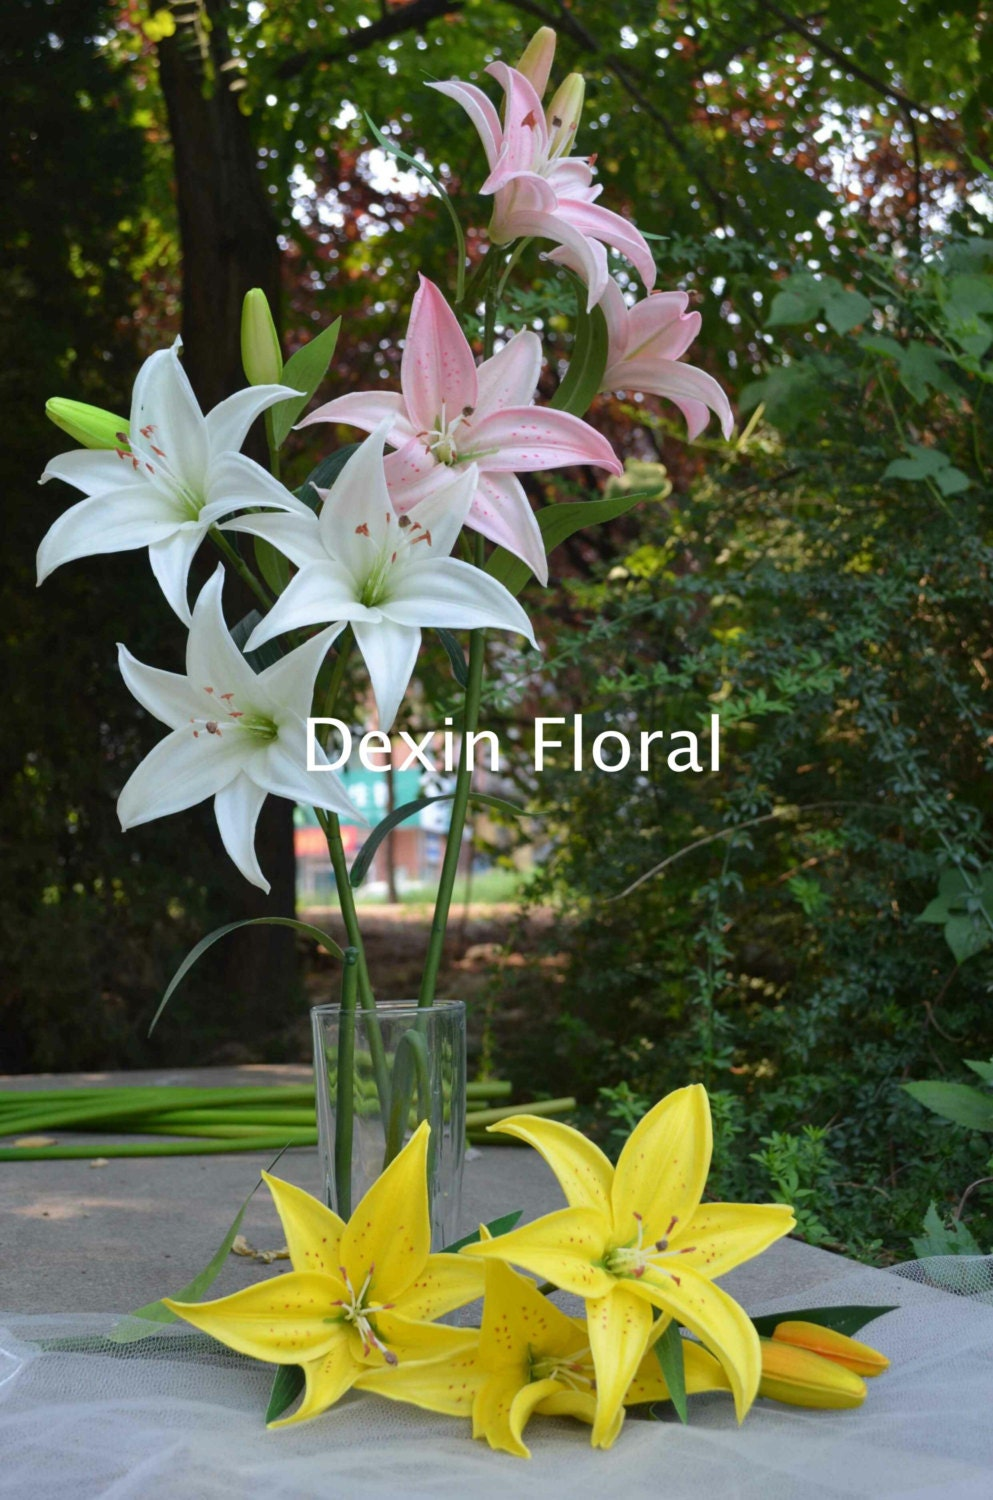 Tiger lilies diy silk bridal bouquets holiday decor real touch zoom izmirmasajfo